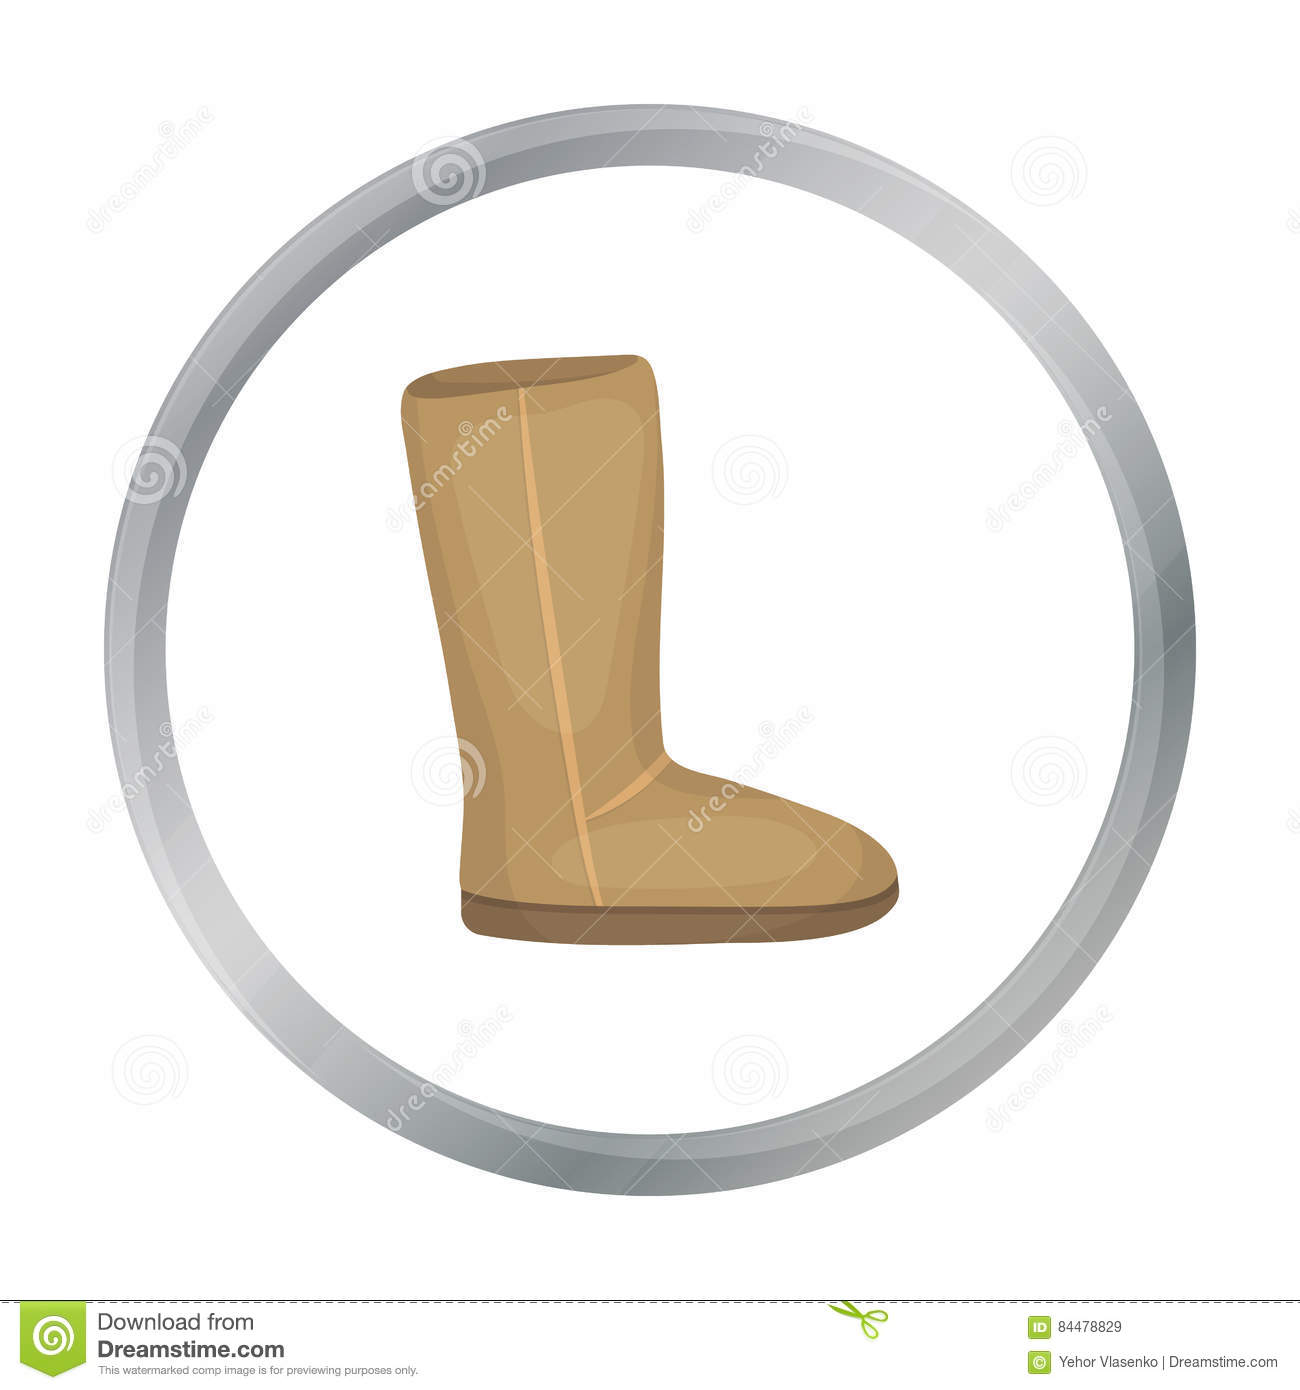 1911dbccc07 Ugg Boots Icon In Cartoon Style Isolated On White Background. Stock ...